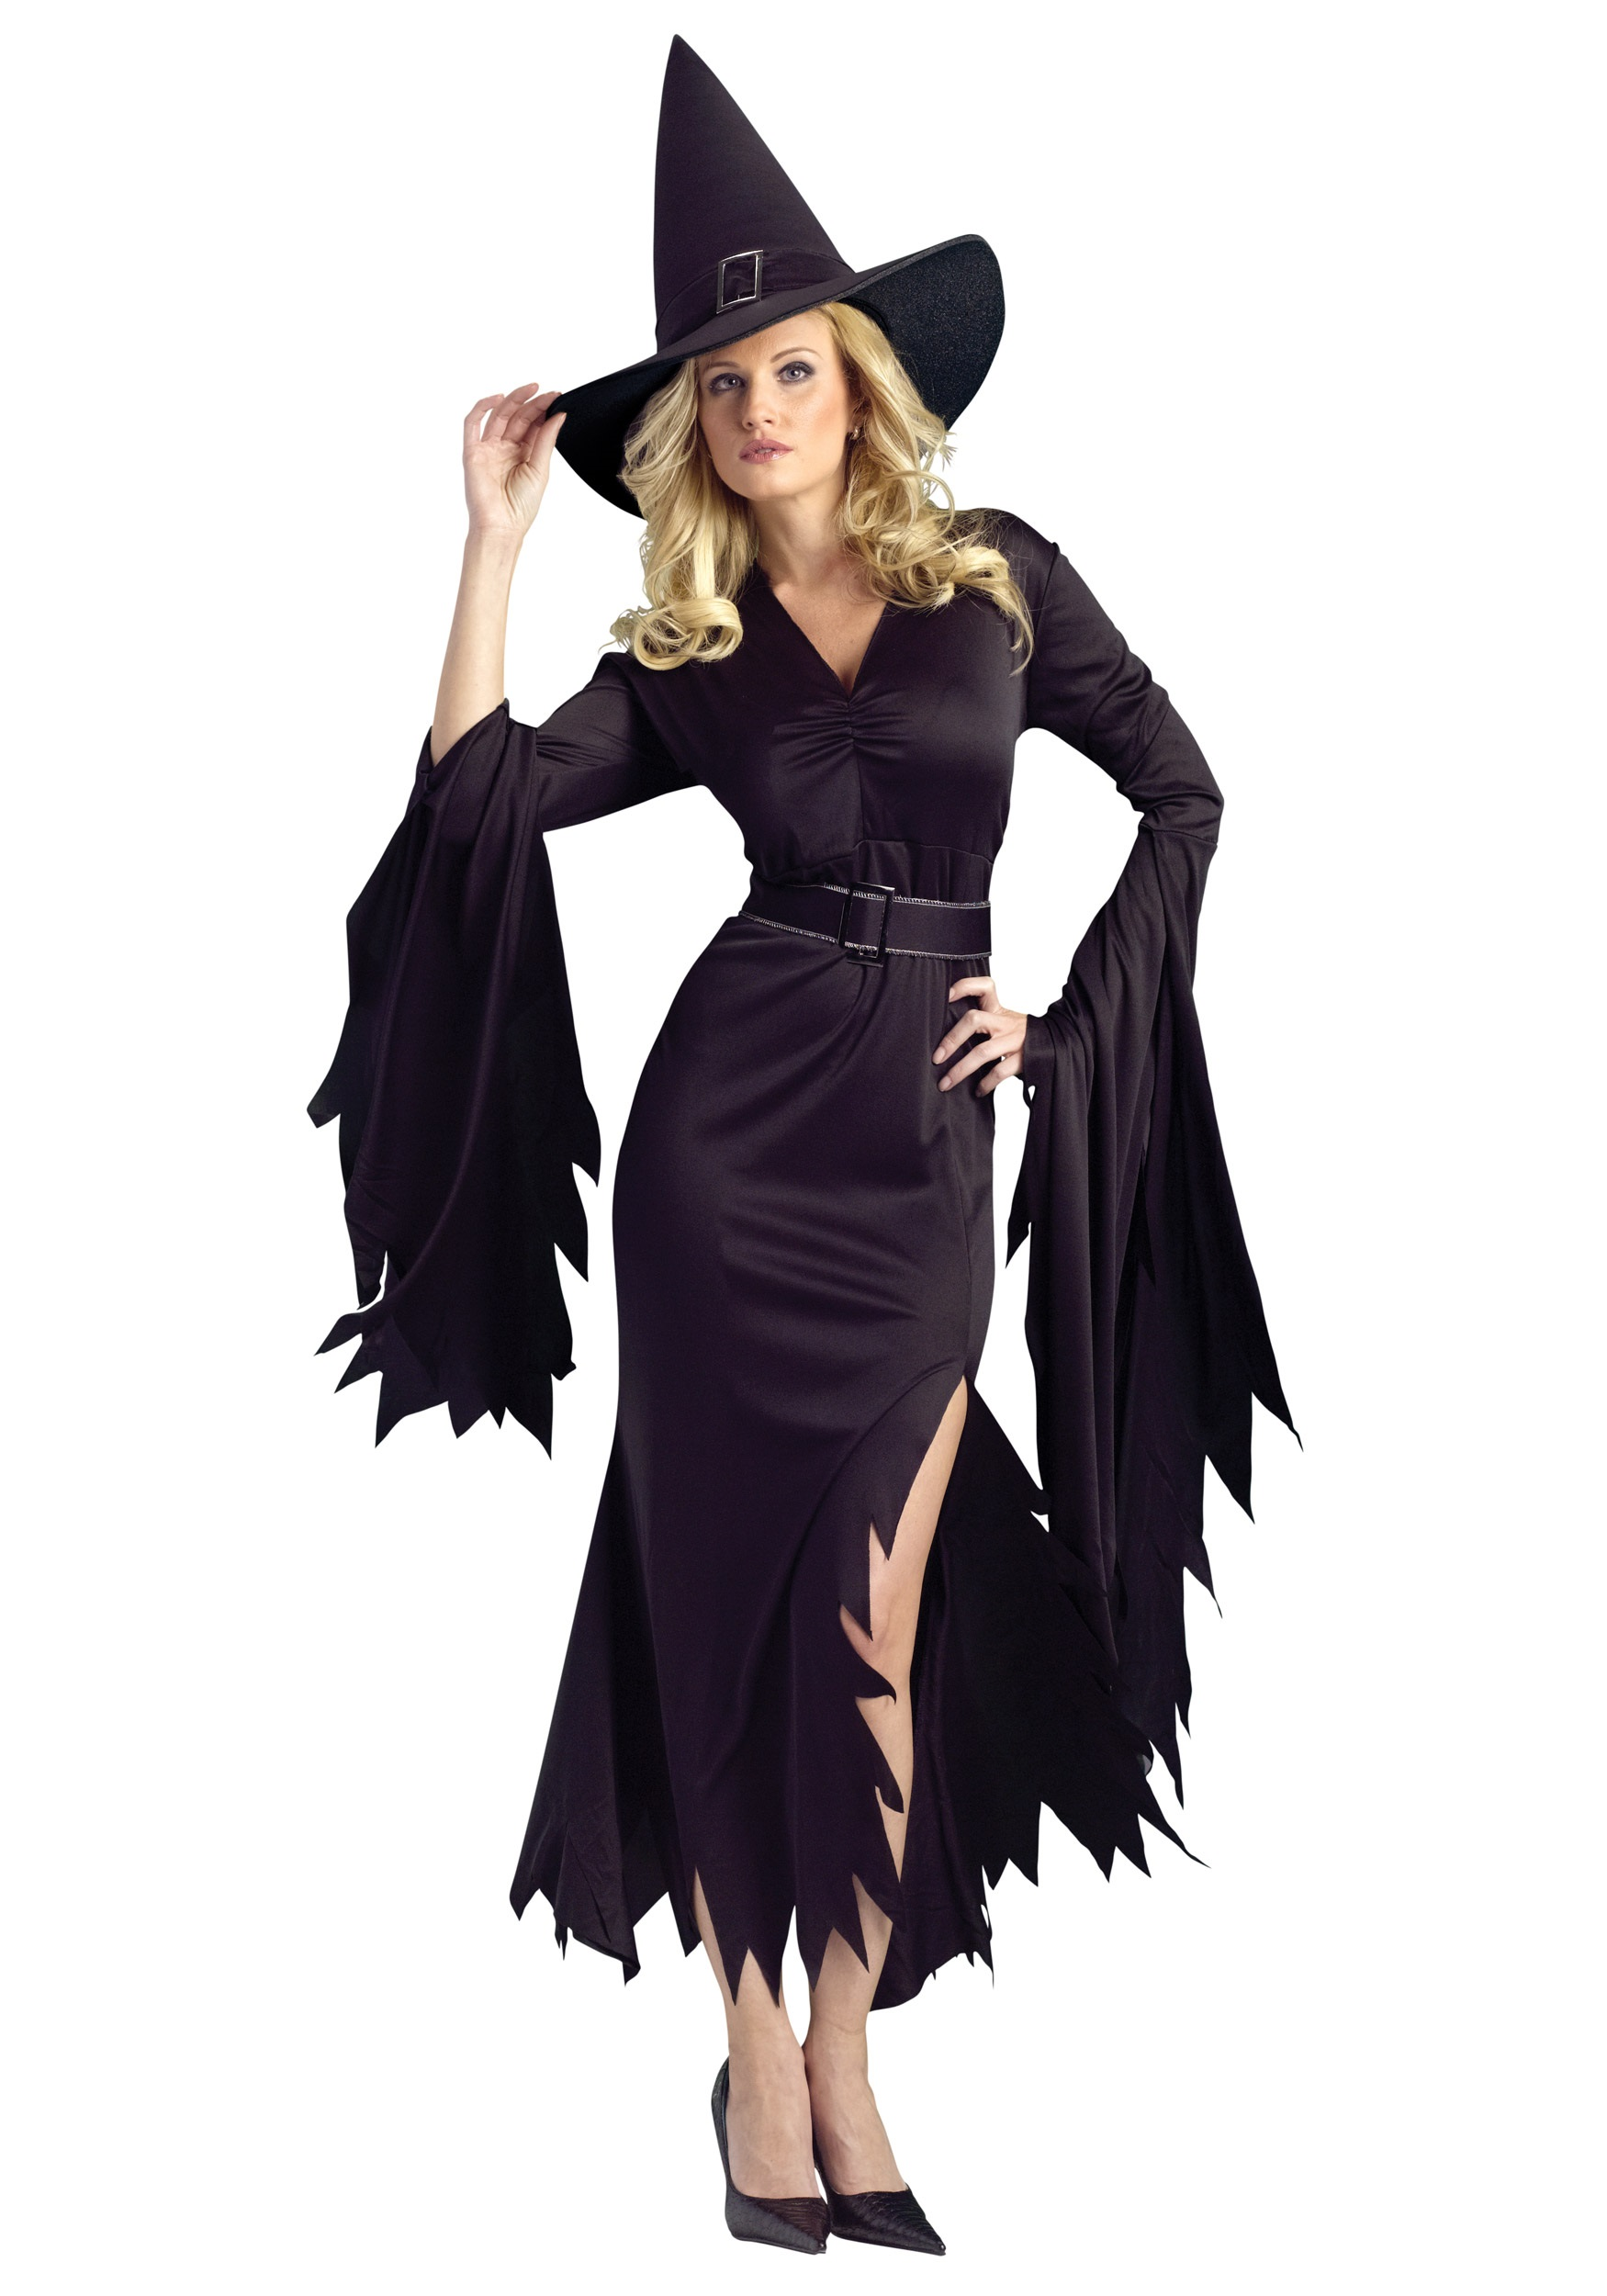 dea2007c4f8 Gothic Witch Costume